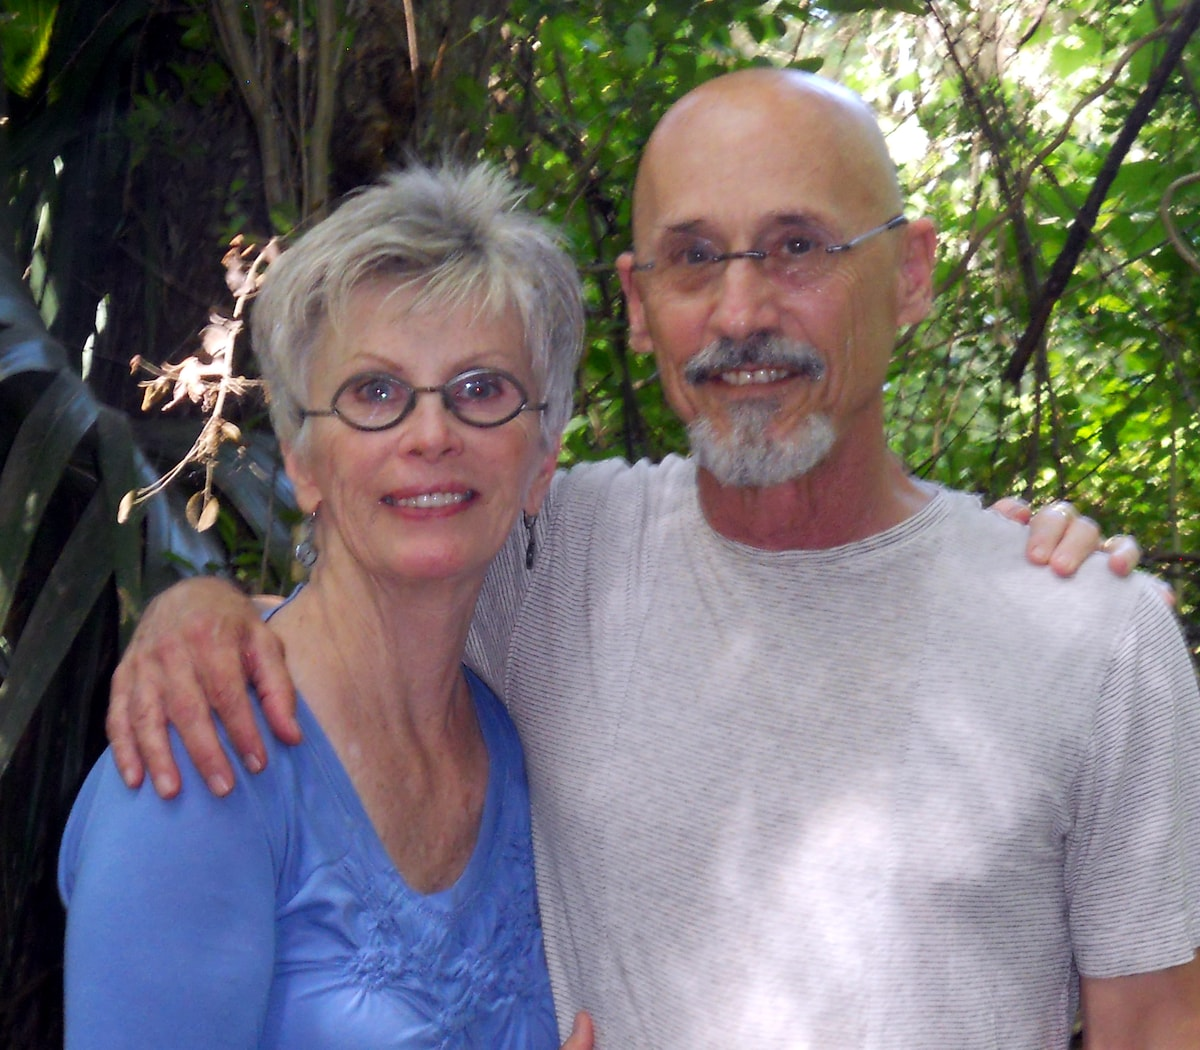 Leslie & Charles From South Carolina, United States